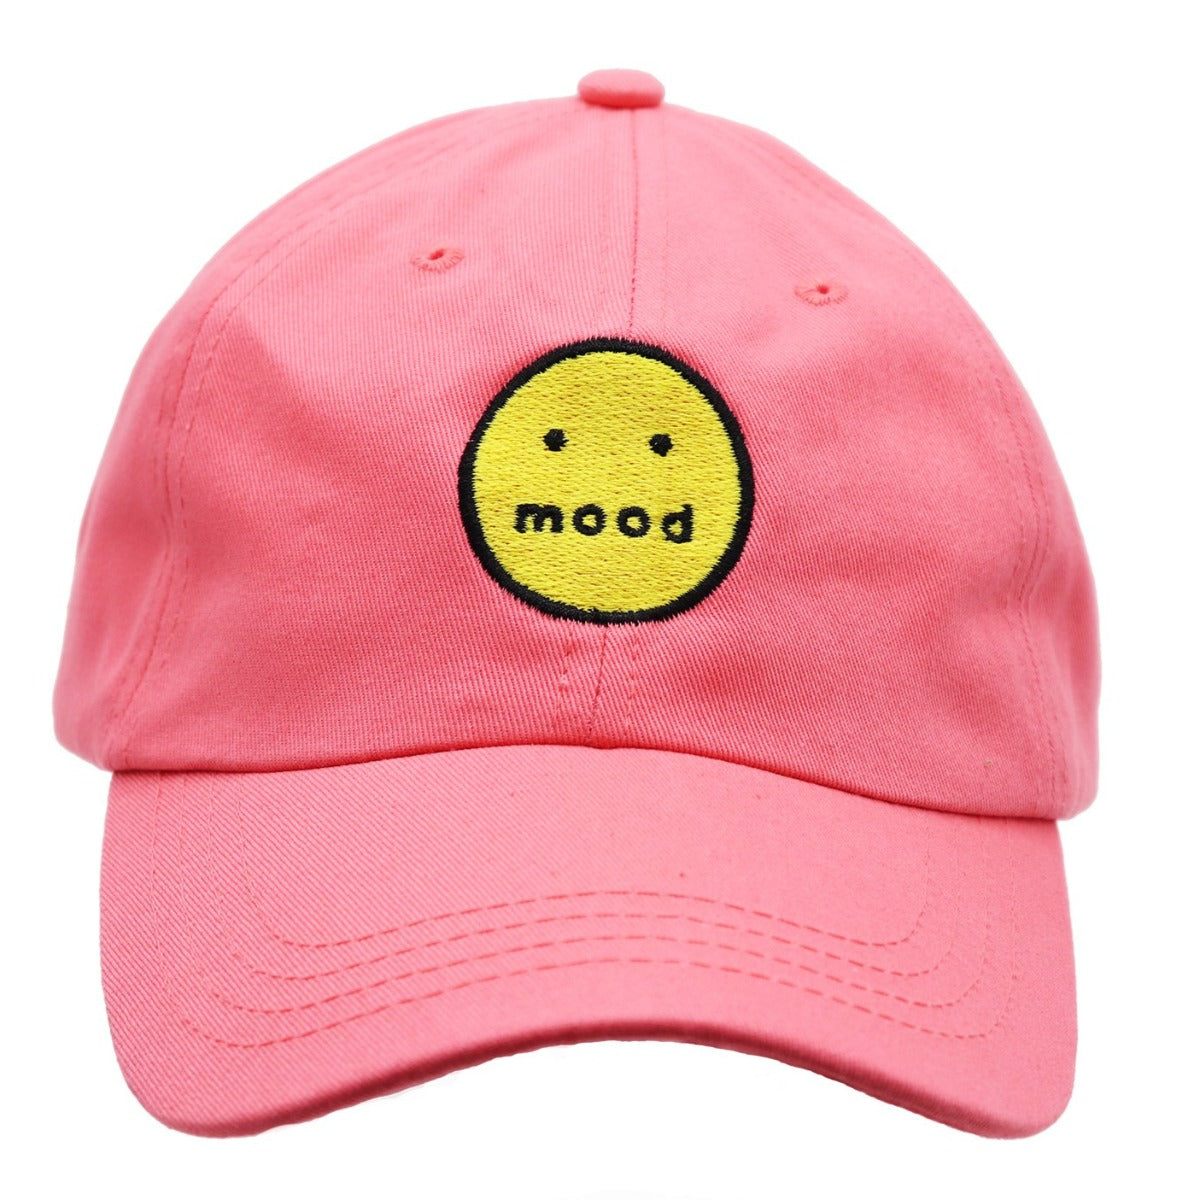 Solid grapefruit color dad hat with an embroidered yellow smiley face outlined in black and the word mood instead of the mouth. Fun, funny, gag, gifts for mom, dad, friend, coworker, or white elephant. Sold by SDTrading Co.